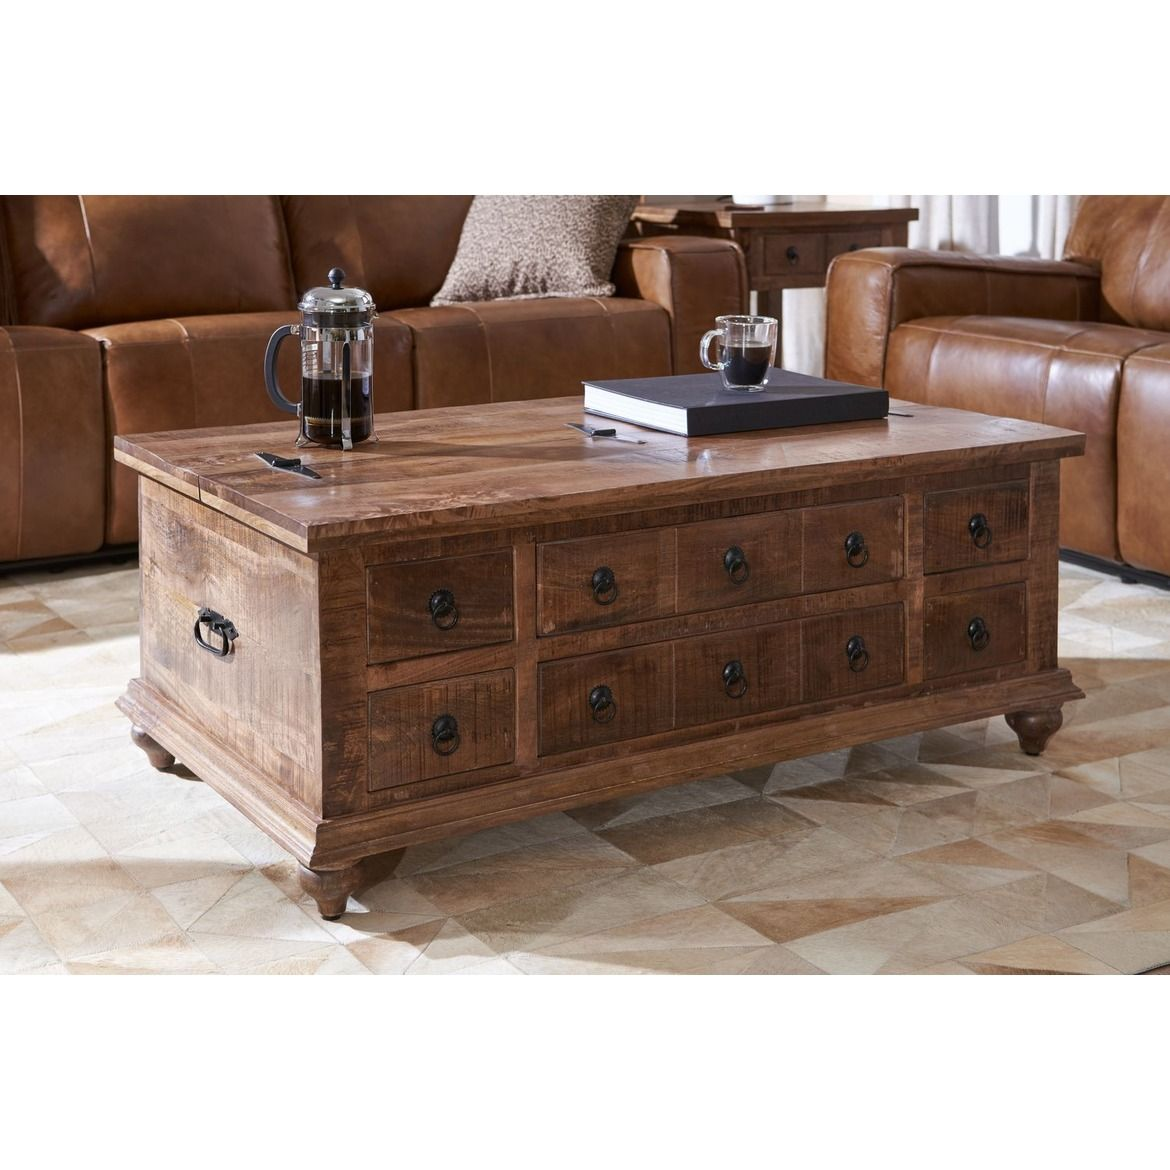 Best Ellis Trunk Coffee Table In 2020 Coffee Table Coffee 400 x 300